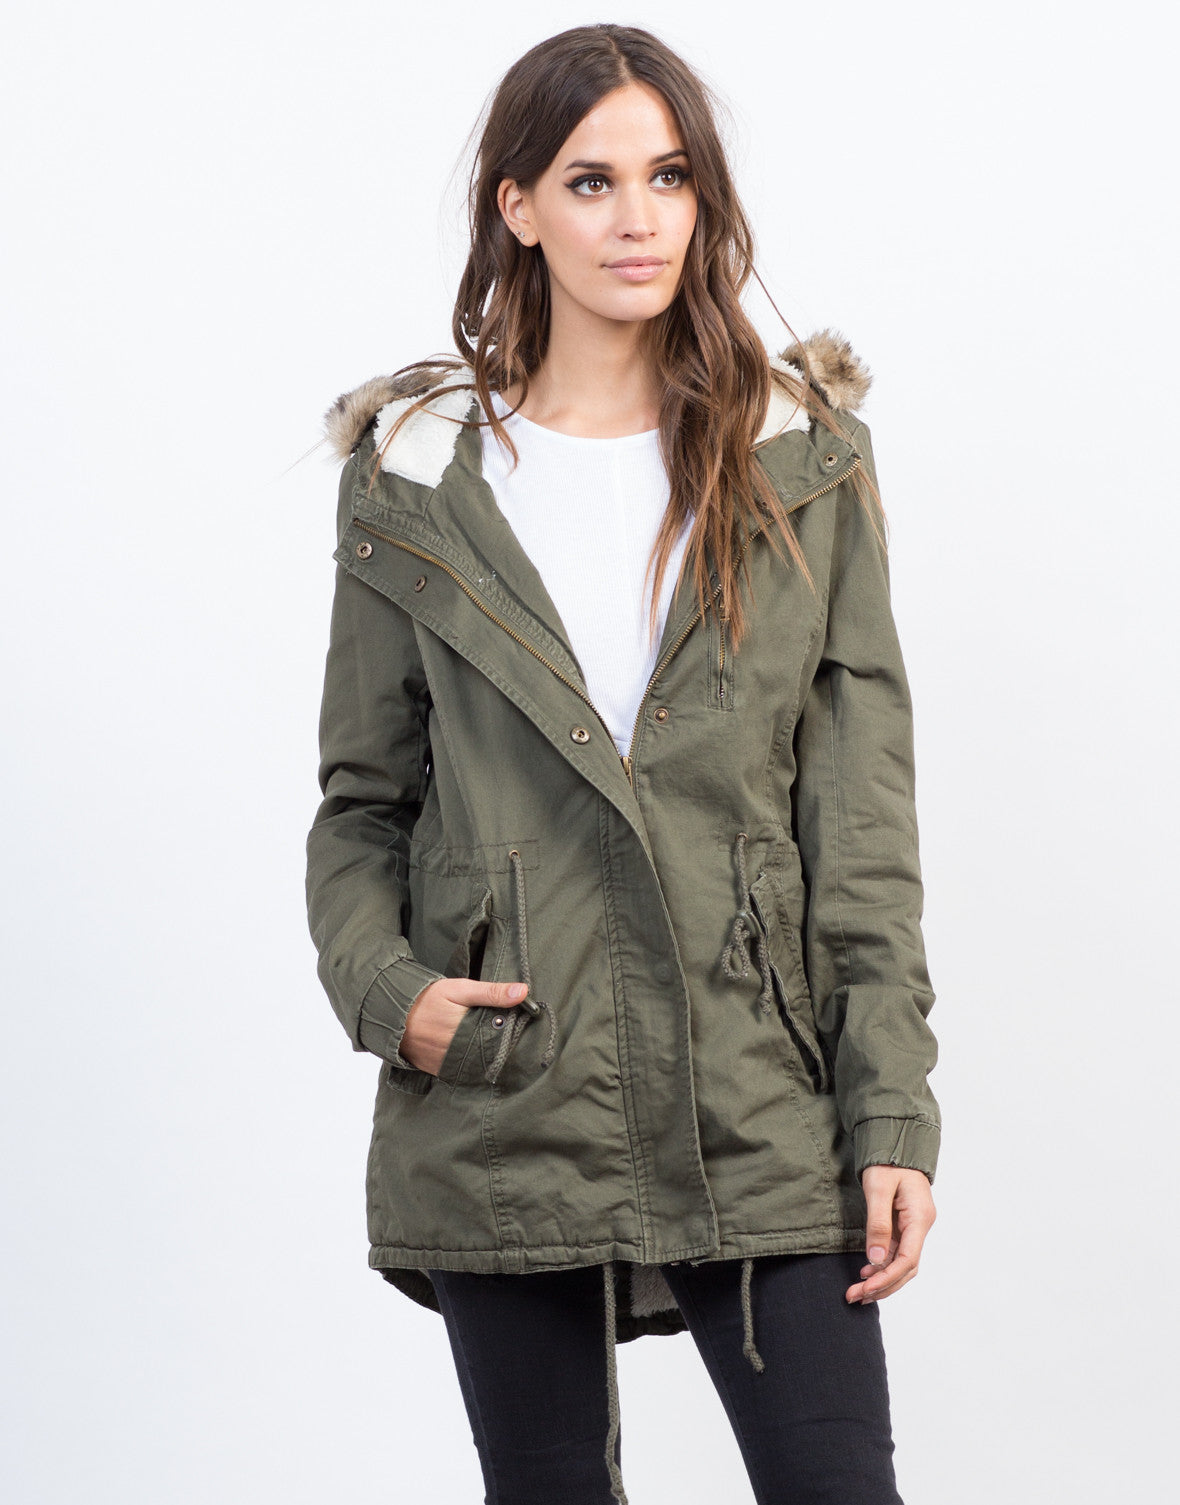 Front View of Furry Hooded Military Jacket